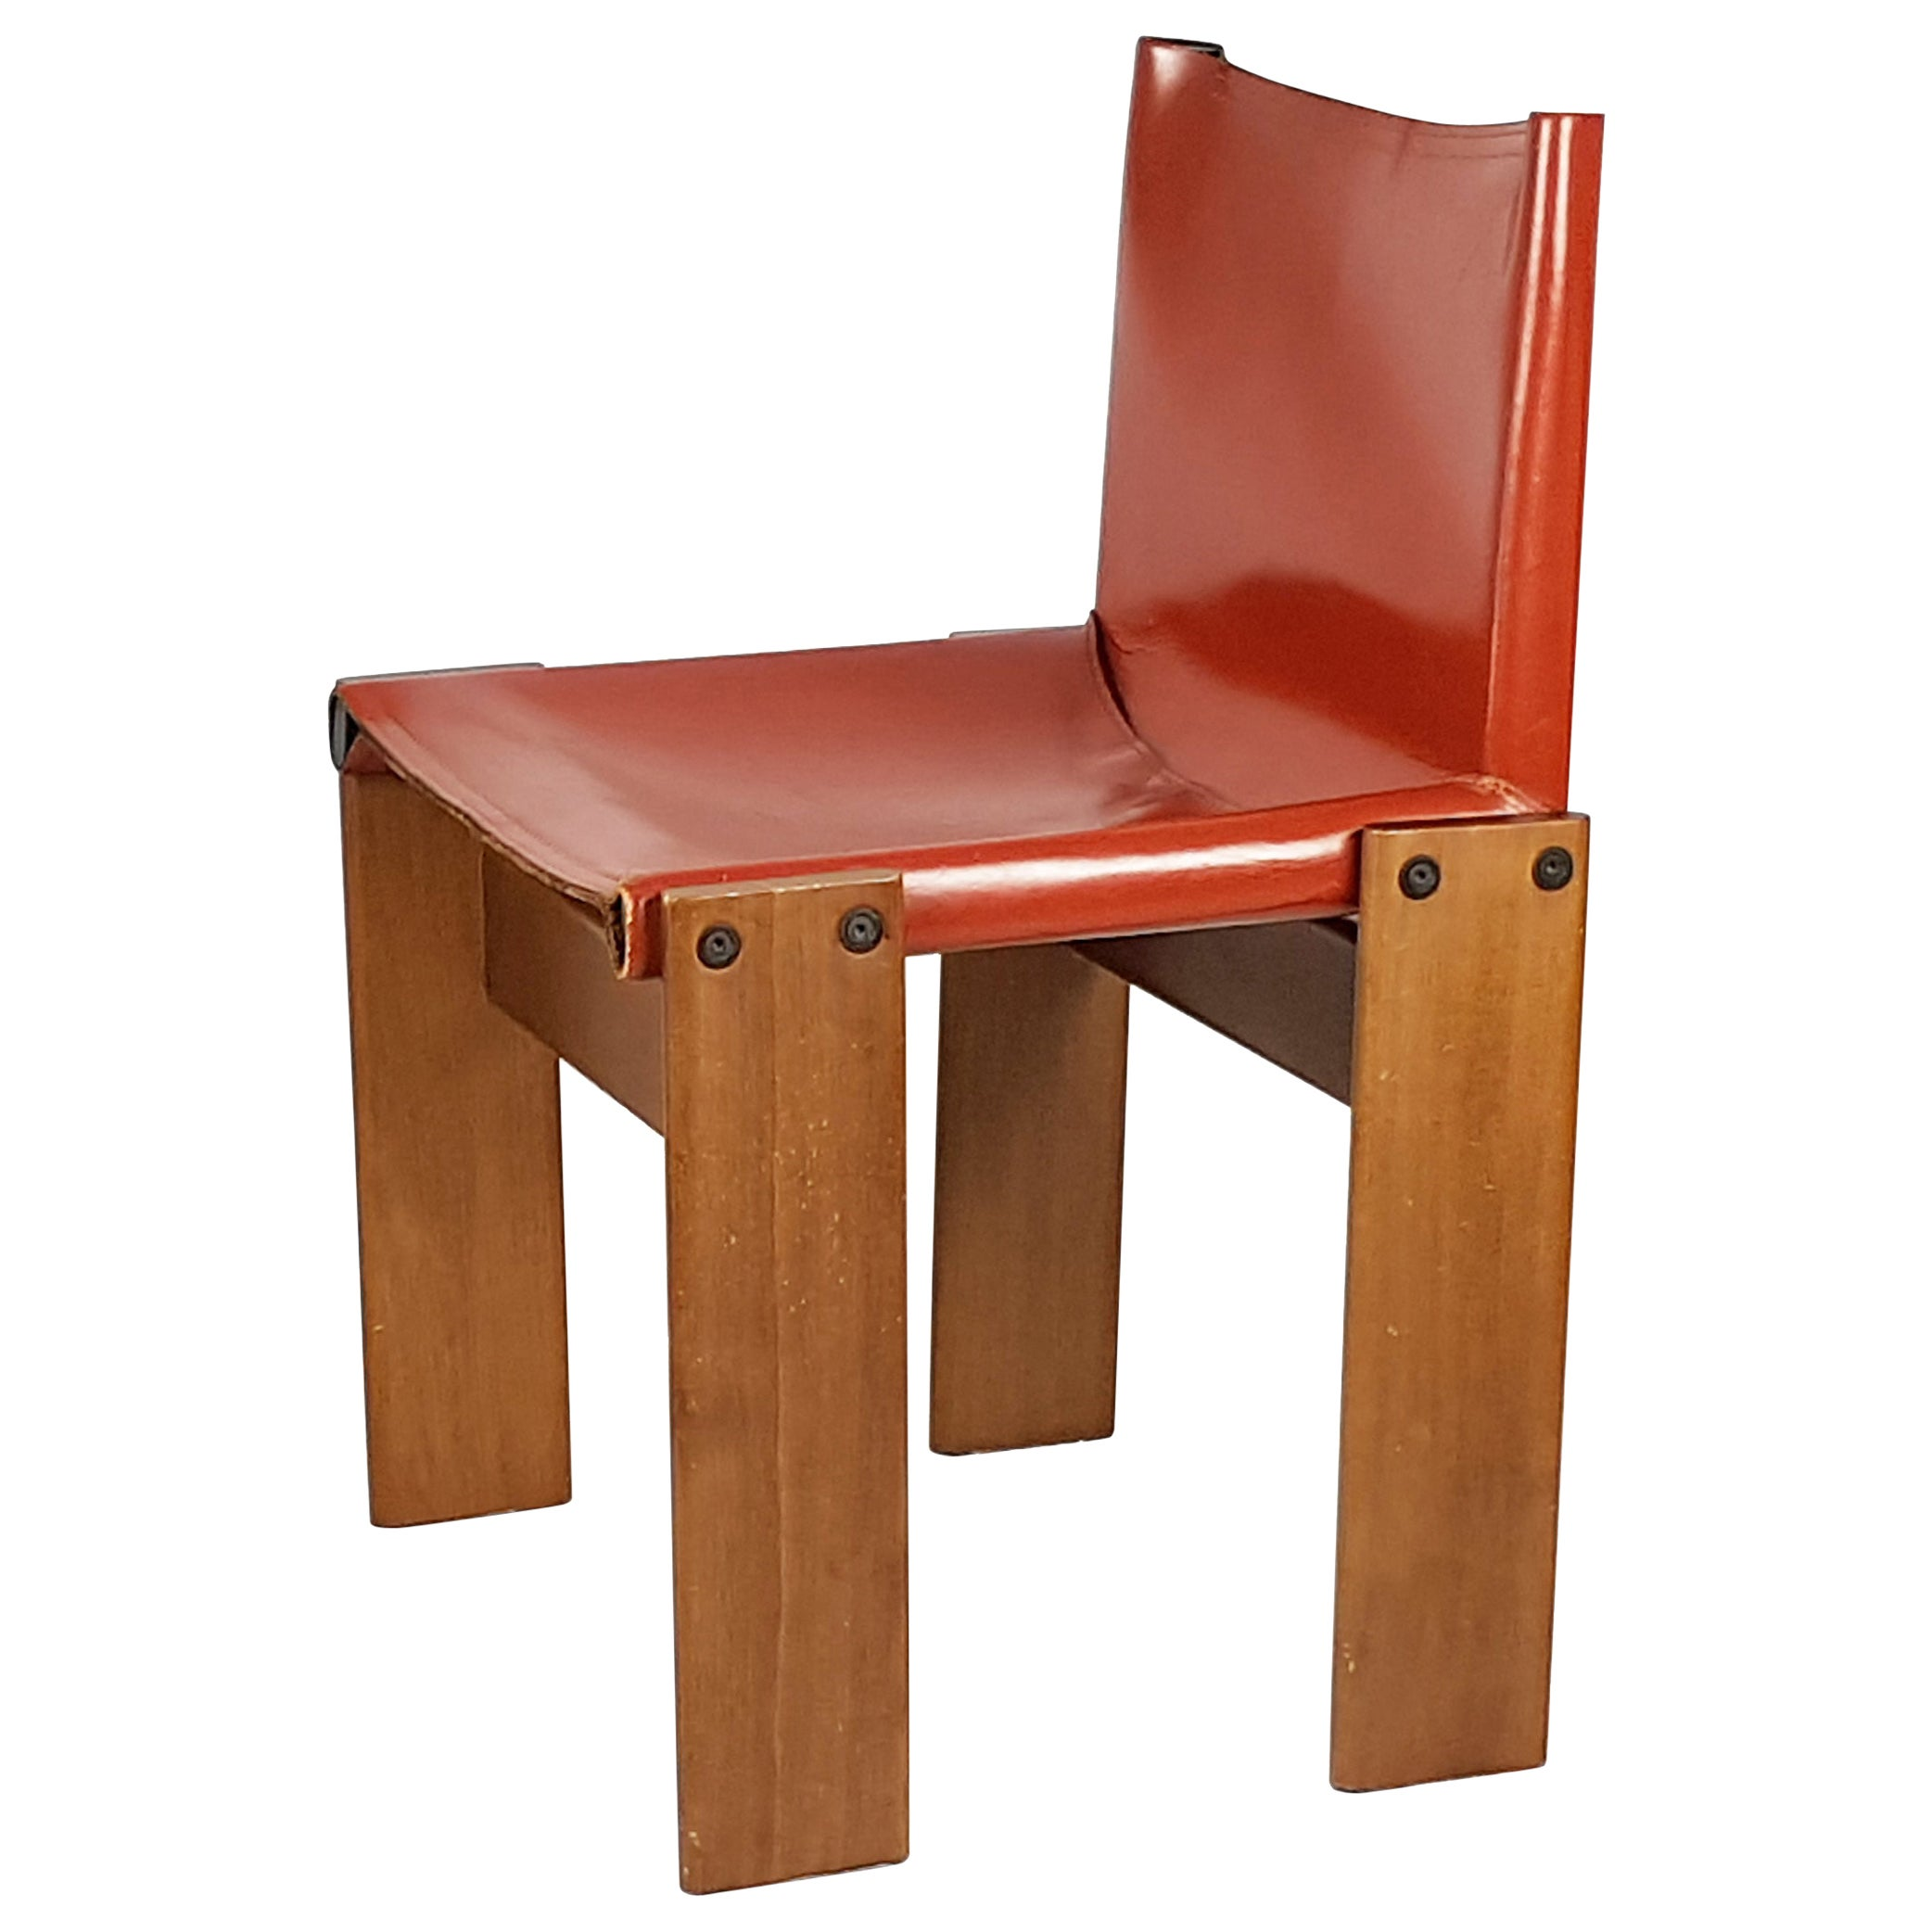 Brick Red leather and Walnut 1974 Monk Chair by Afra e Tobia Scarpa for Molteni